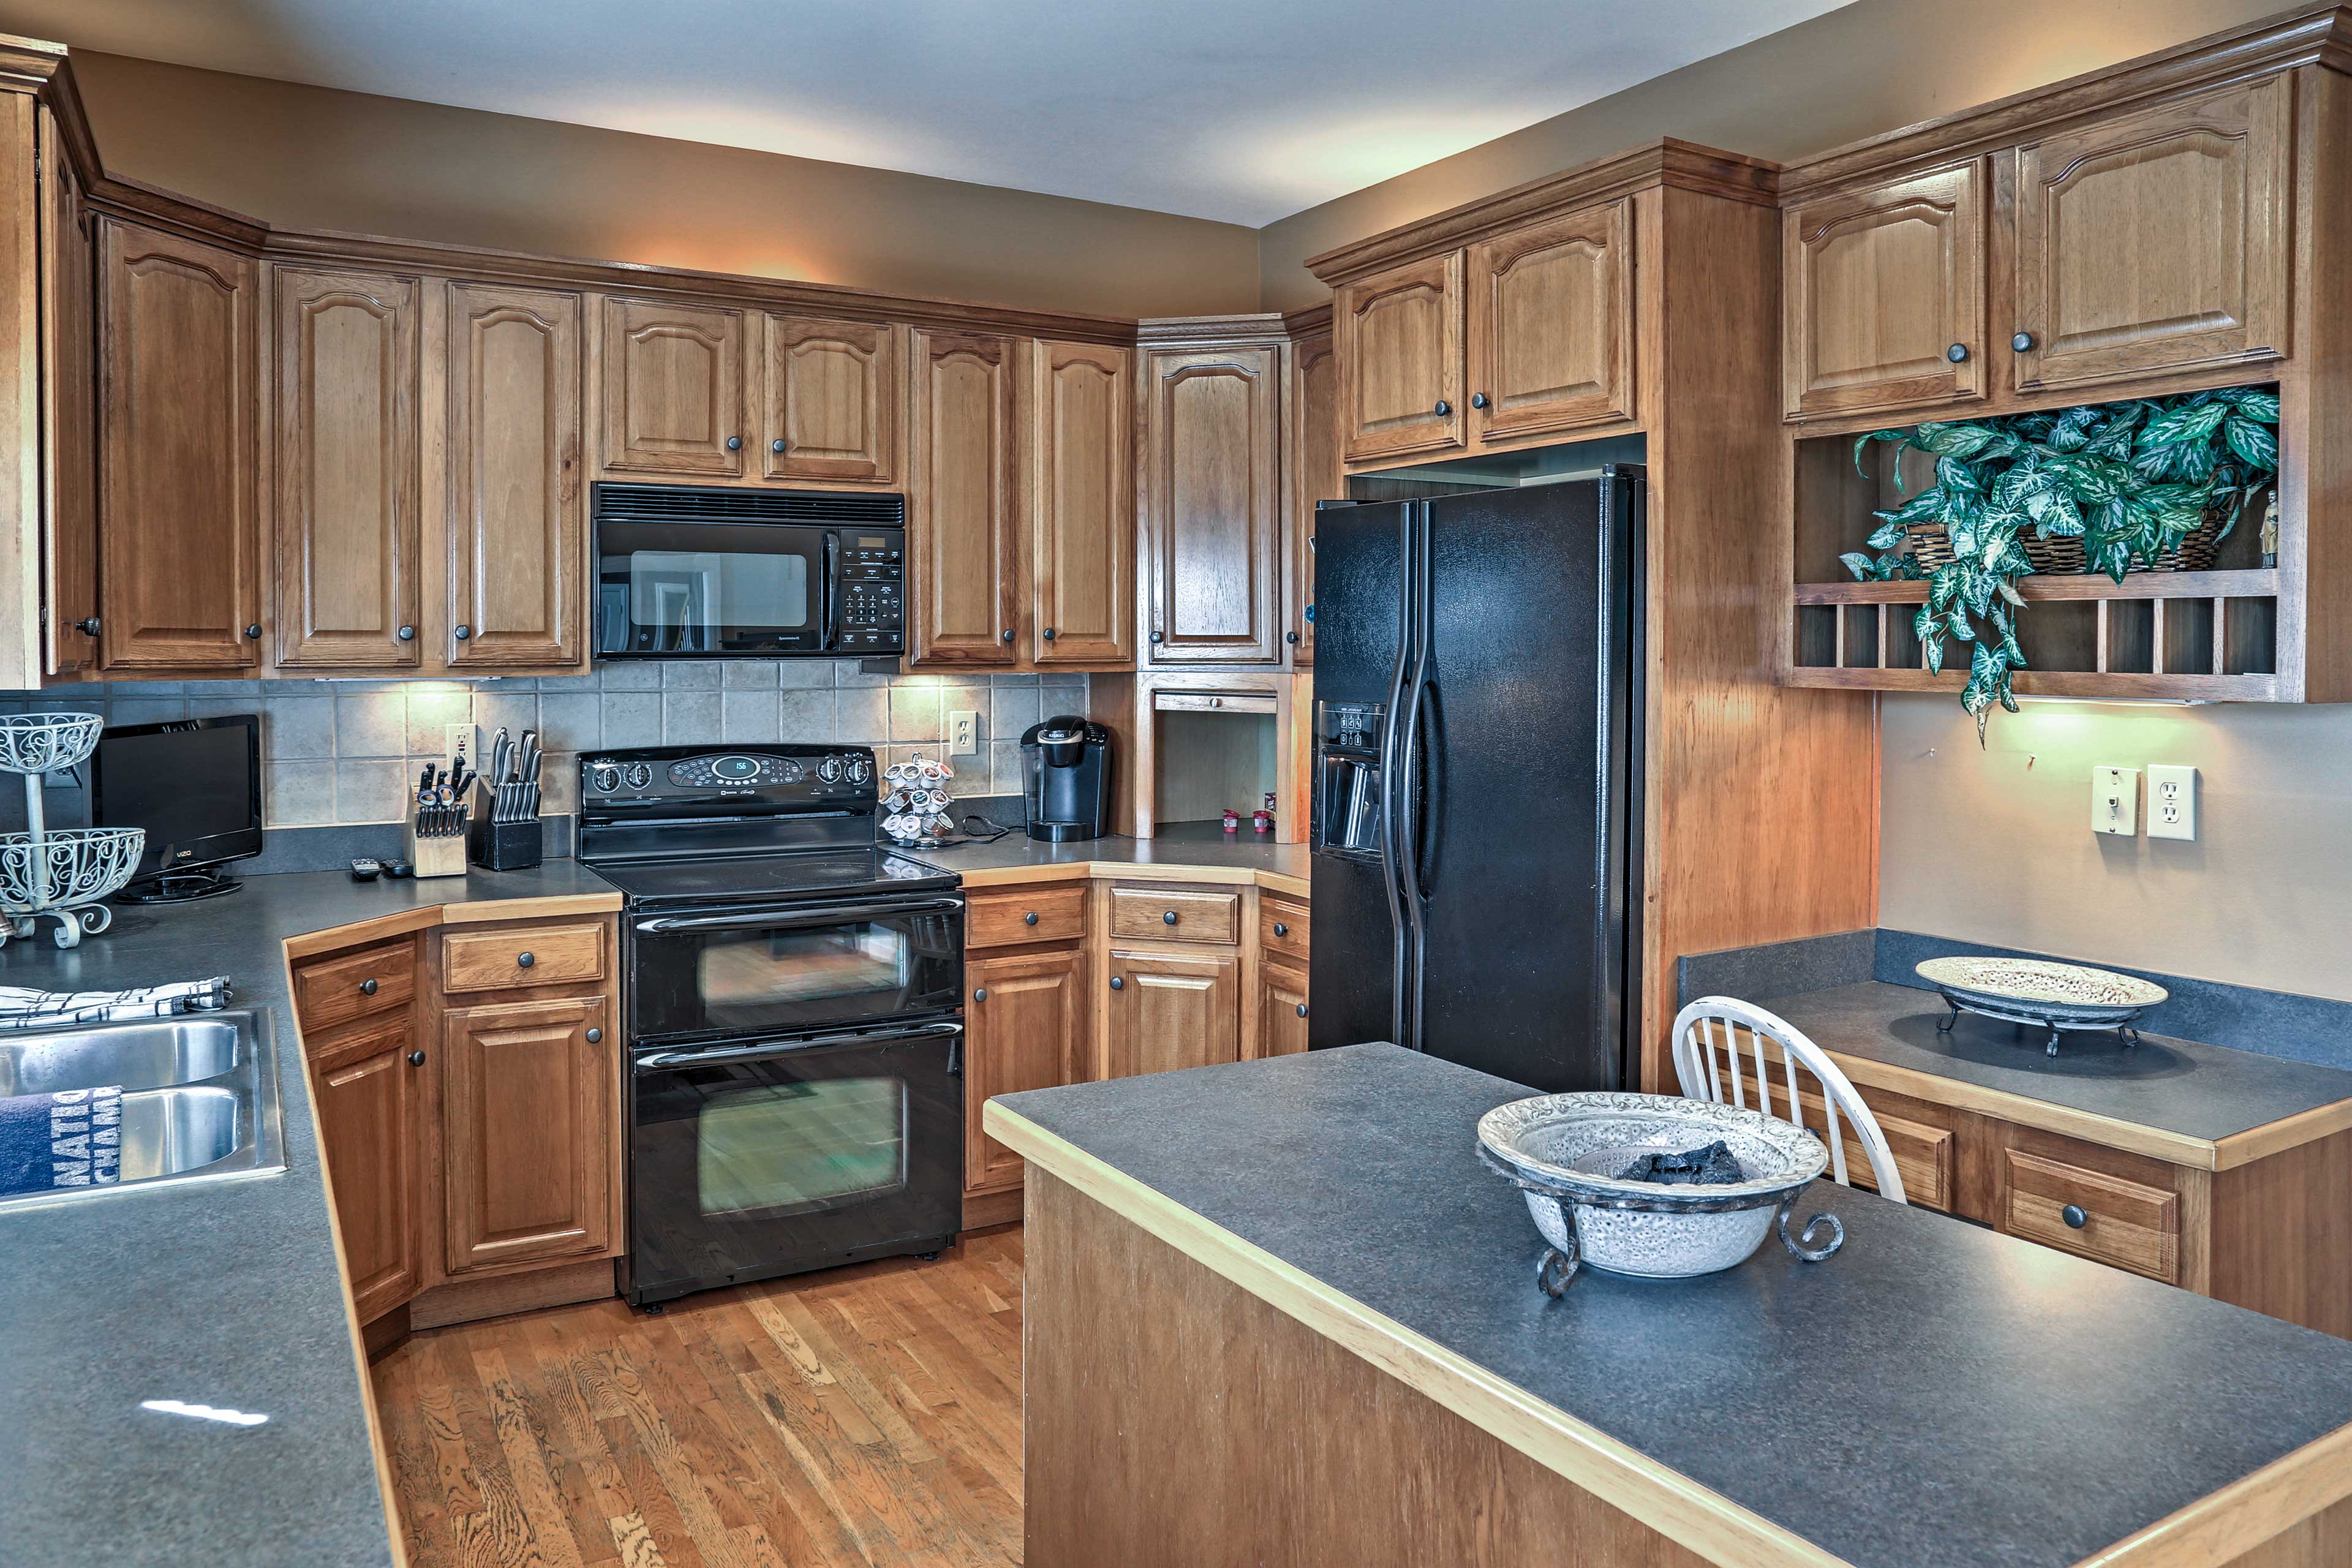 The fully equipped kitchen has everything you'll need to make your favorite recipes.